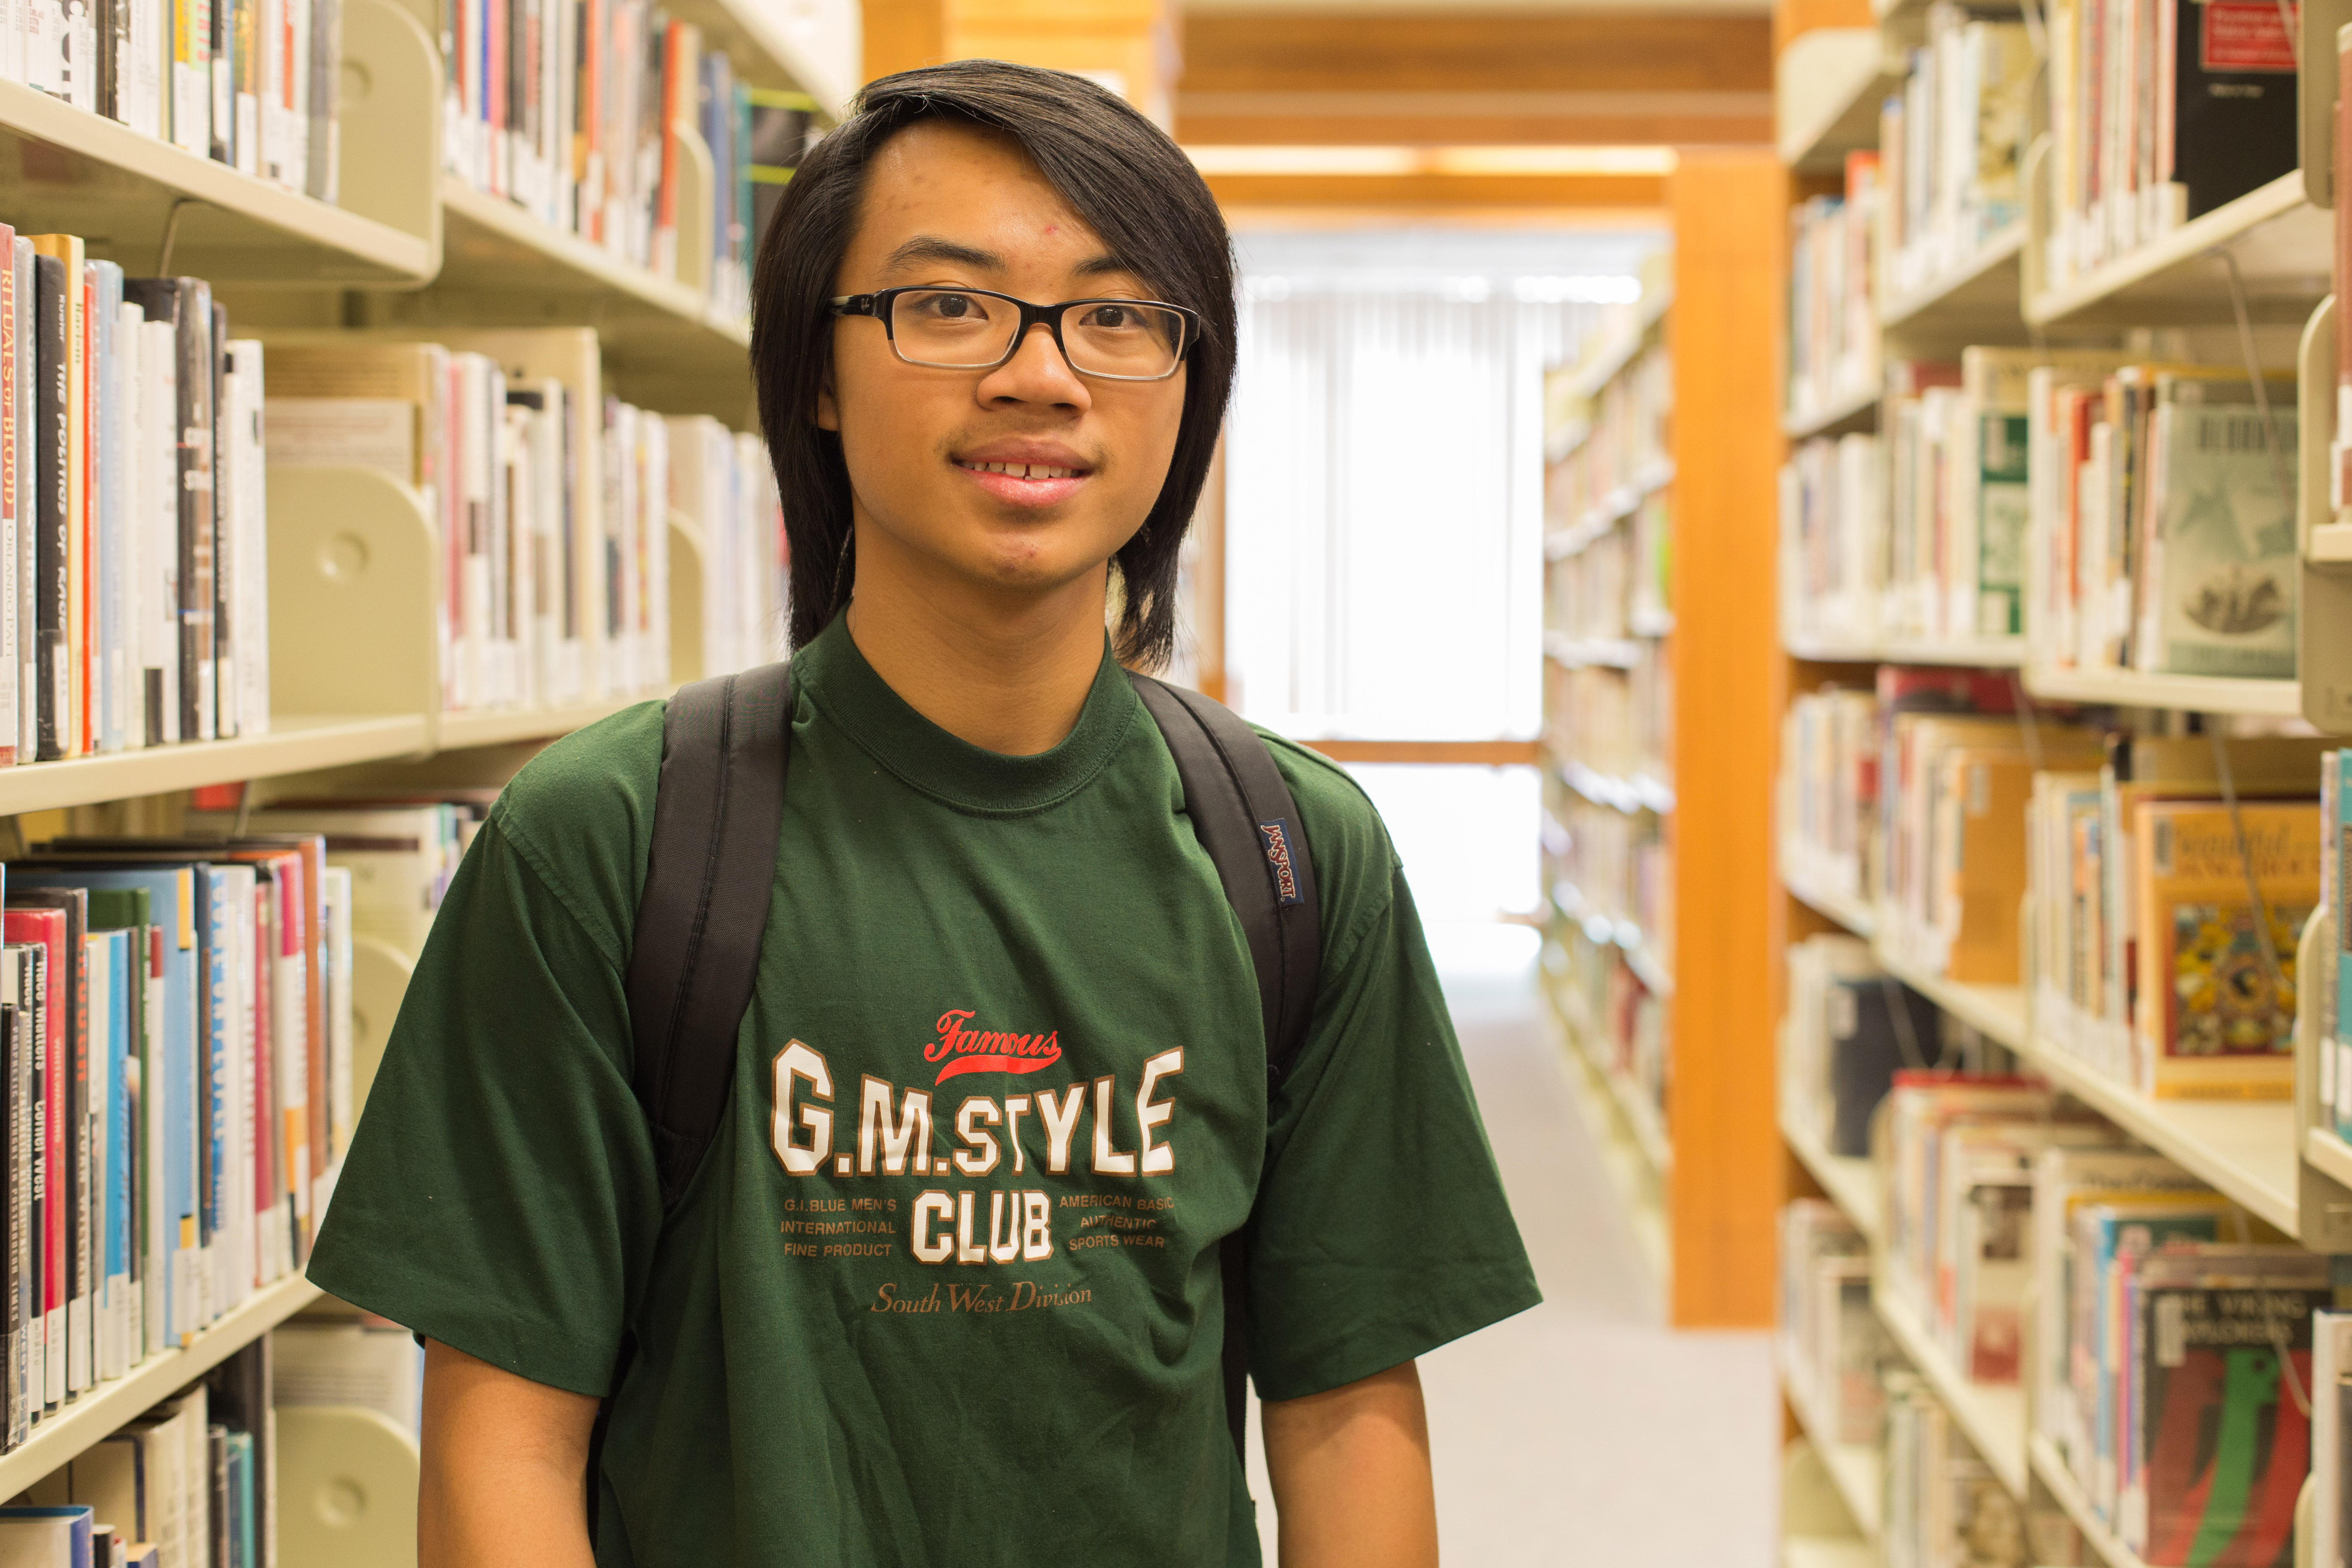 City College Student Eric Ngai Biochemistry Major Poses For A Photo In The Library April 27 2016 Hector Flores Staff Photographer